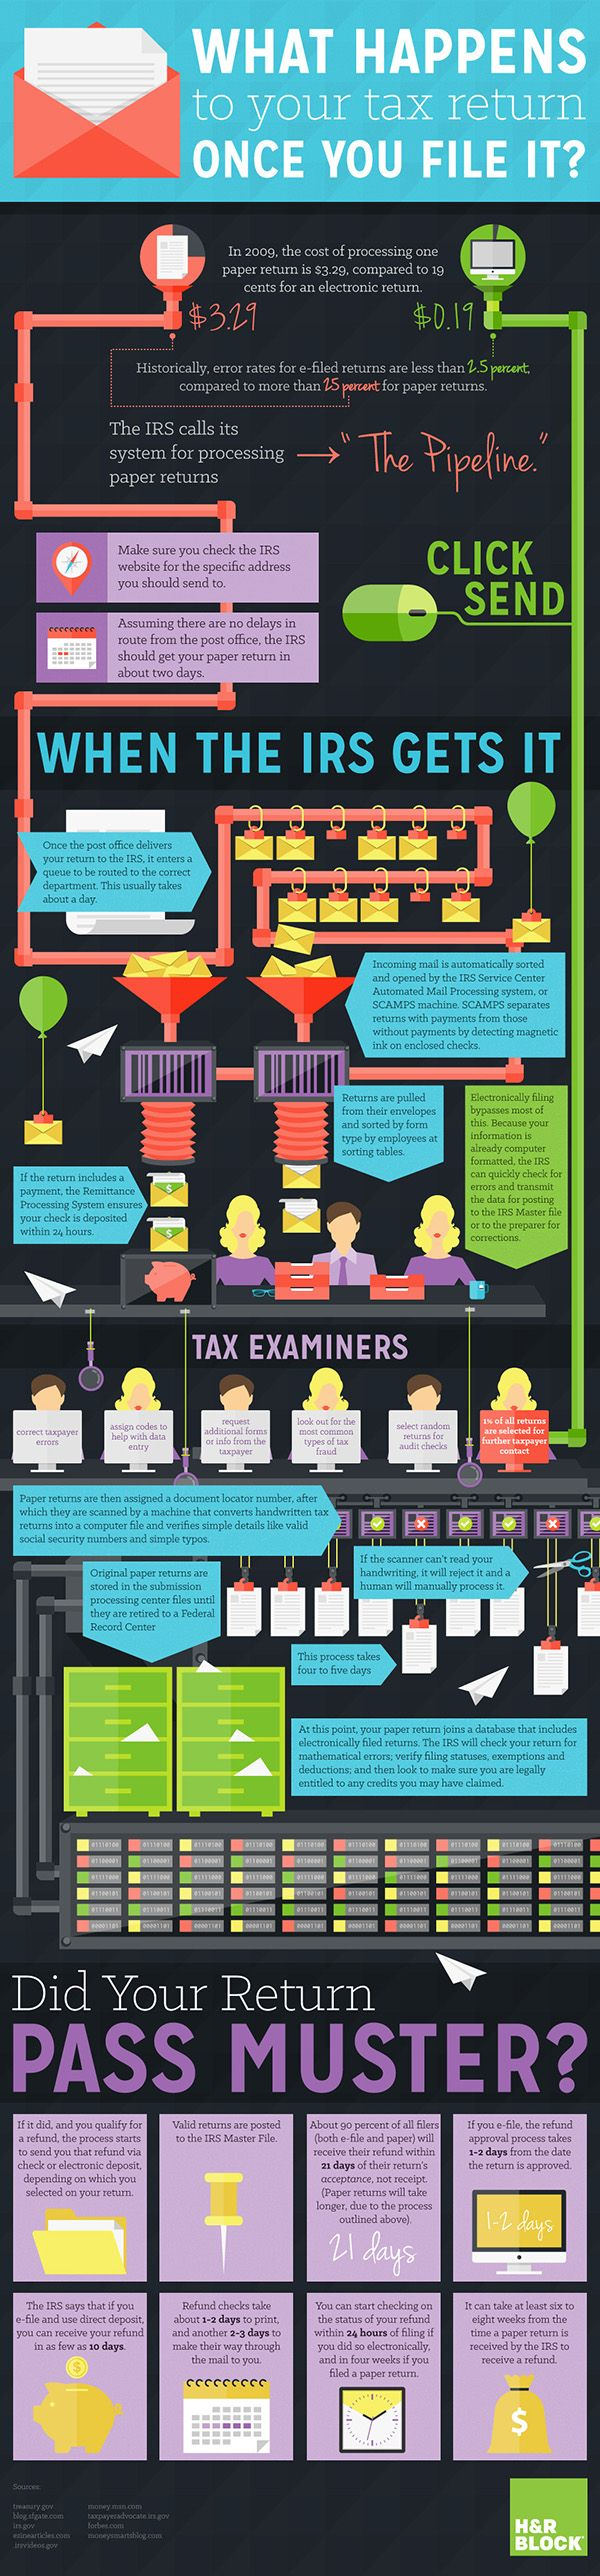 Every step of your #tax return from either mailing it or e-filing to refund. http://blogs.hrblock.com/2014/01/22/how-a-return-becomes-a-refund-infographic/